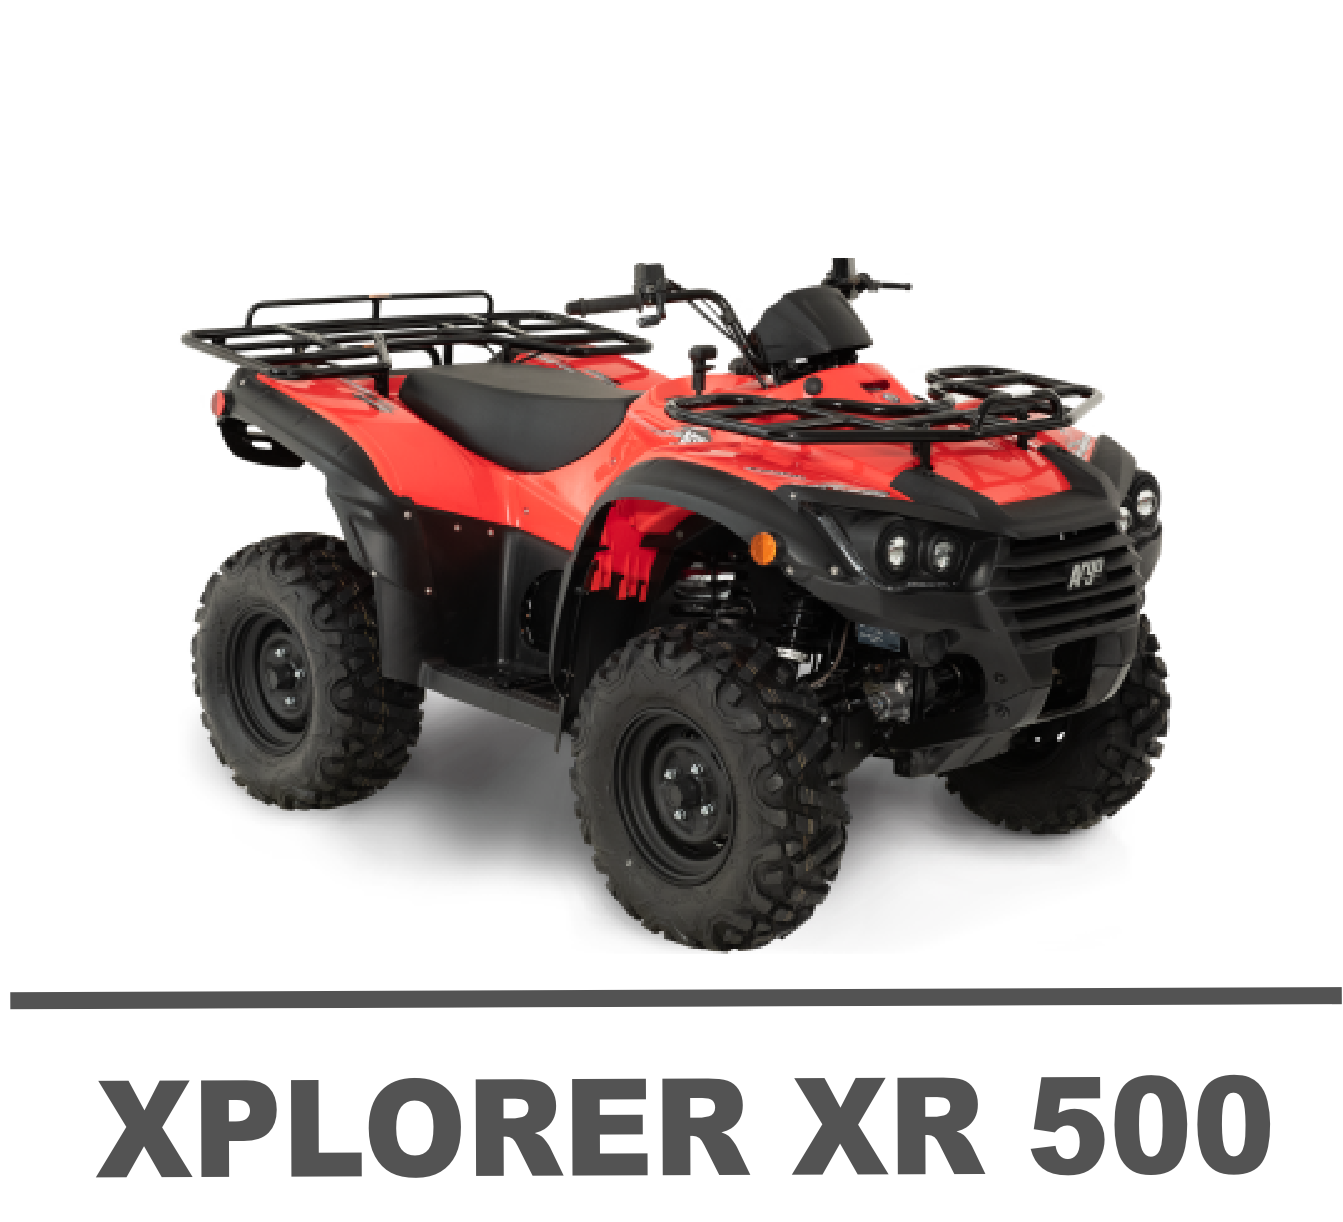 ARGO XPLORER XR 500 MANUALS